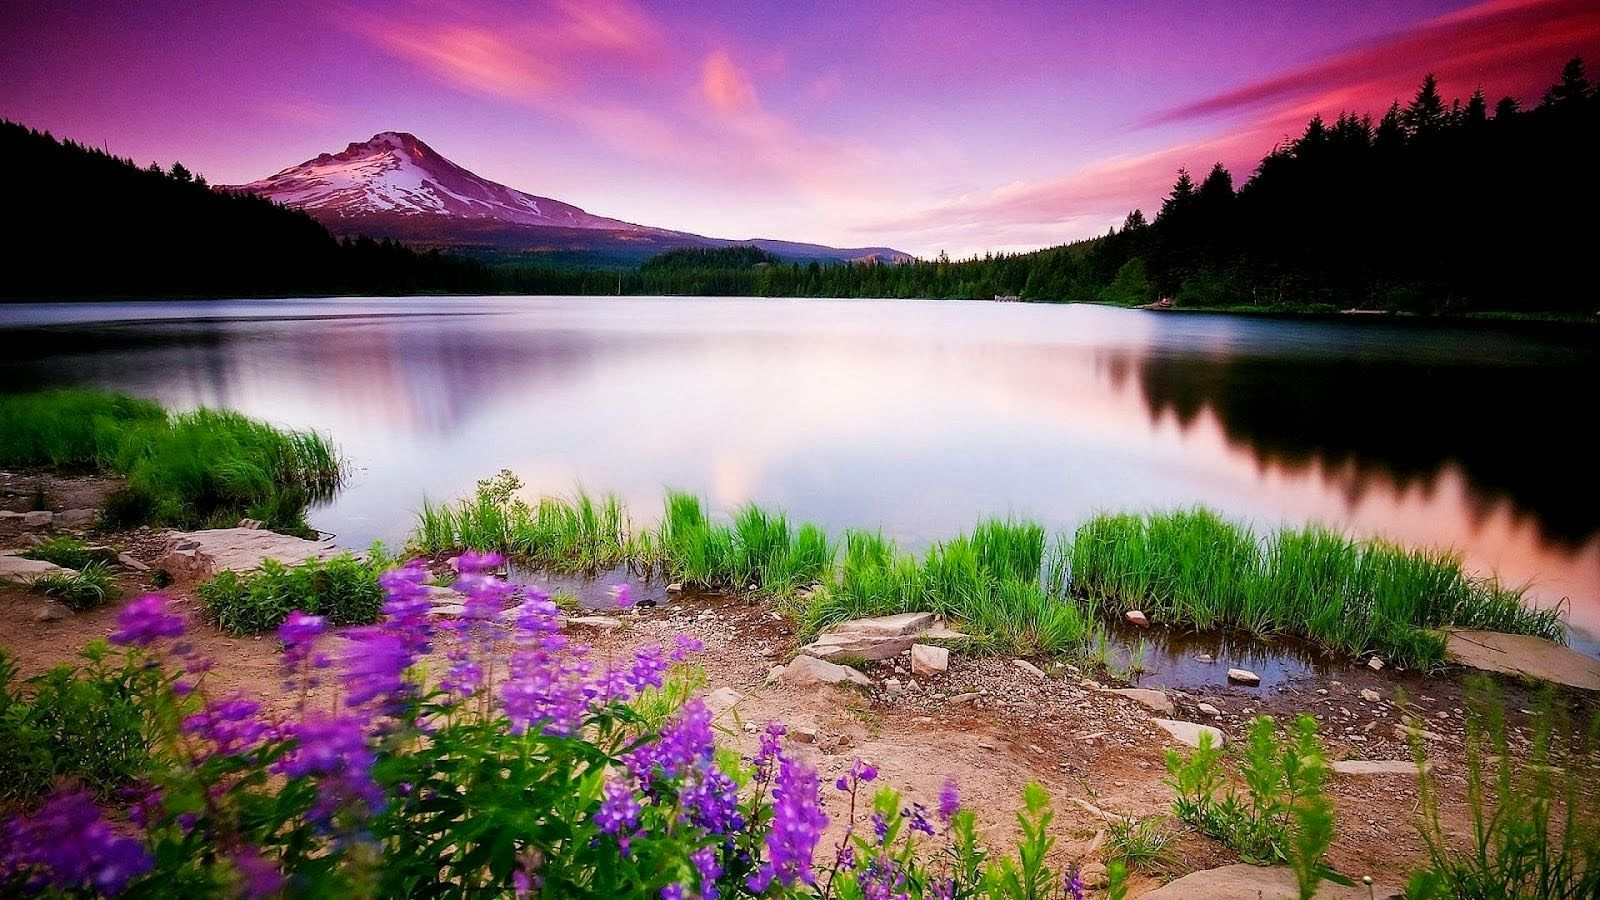 Nature Hd Wallpapers Download Hd Wallpaper Beautiful Landscapes